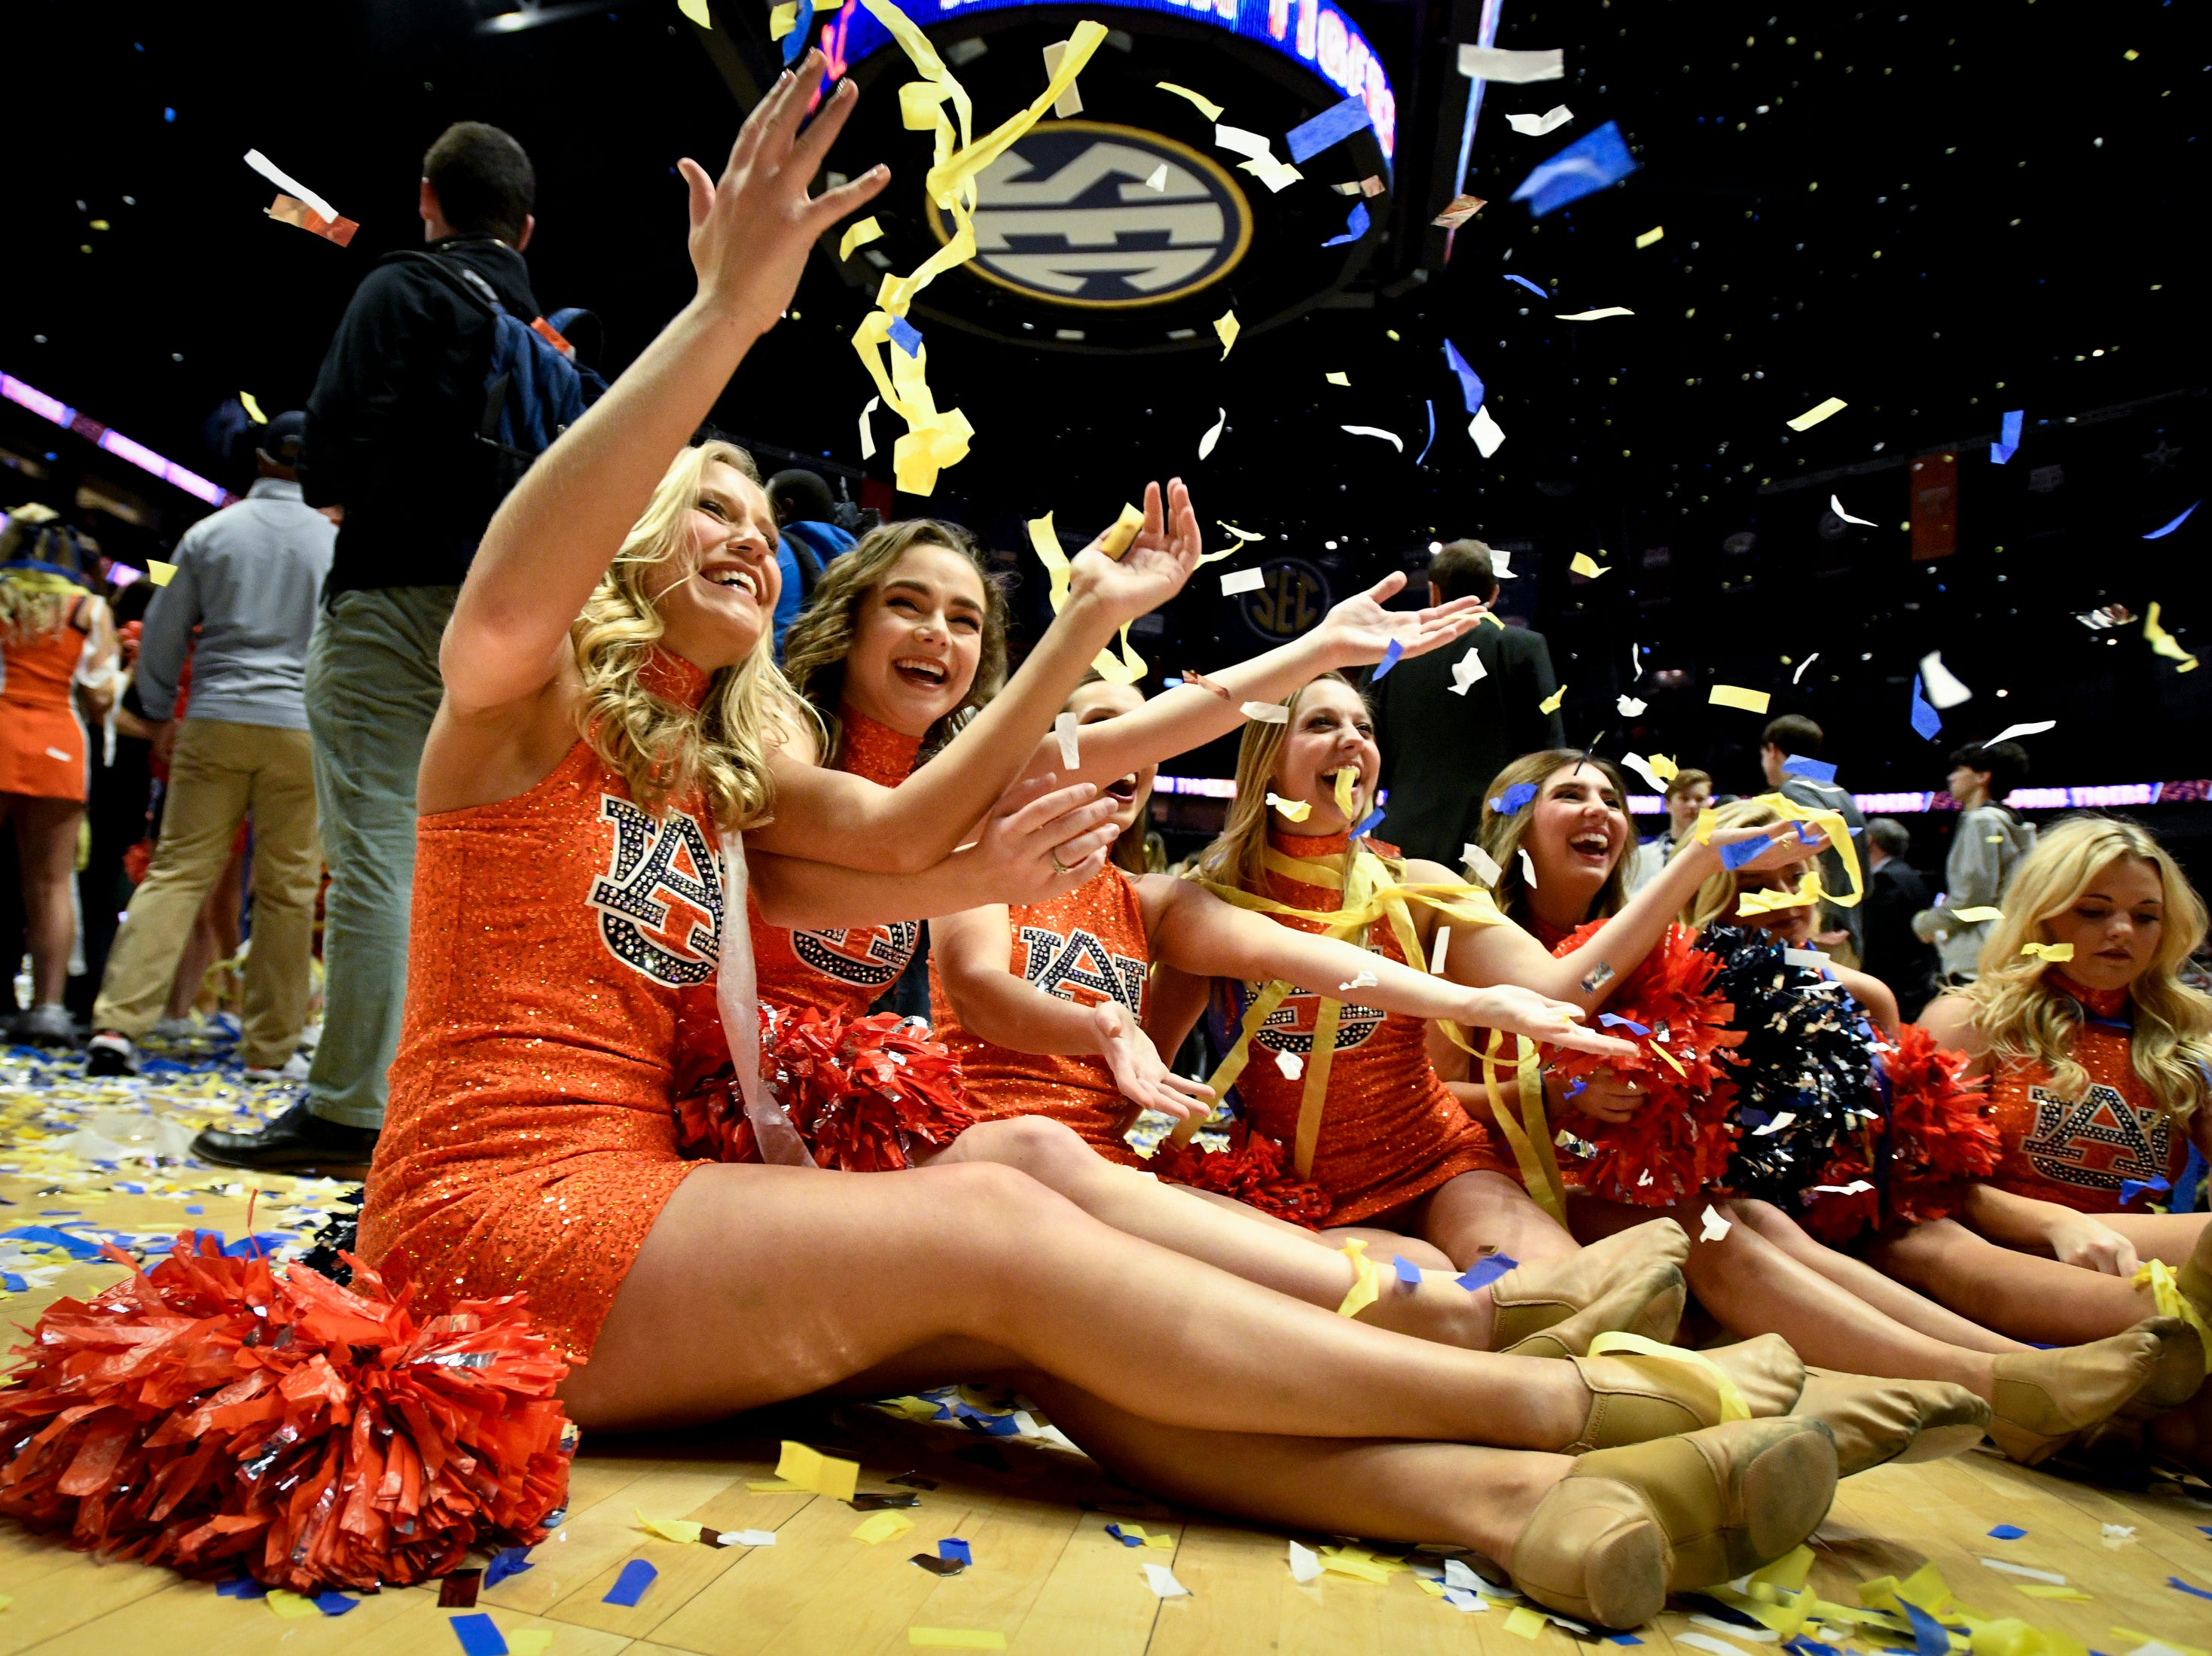 The Auburn dance team celebrates after their SEC Men's Basketball Tournament championship victory against Tennessee at Bridgestone Arena in Nashville, Tenn., Sunday, March 17, 2019.